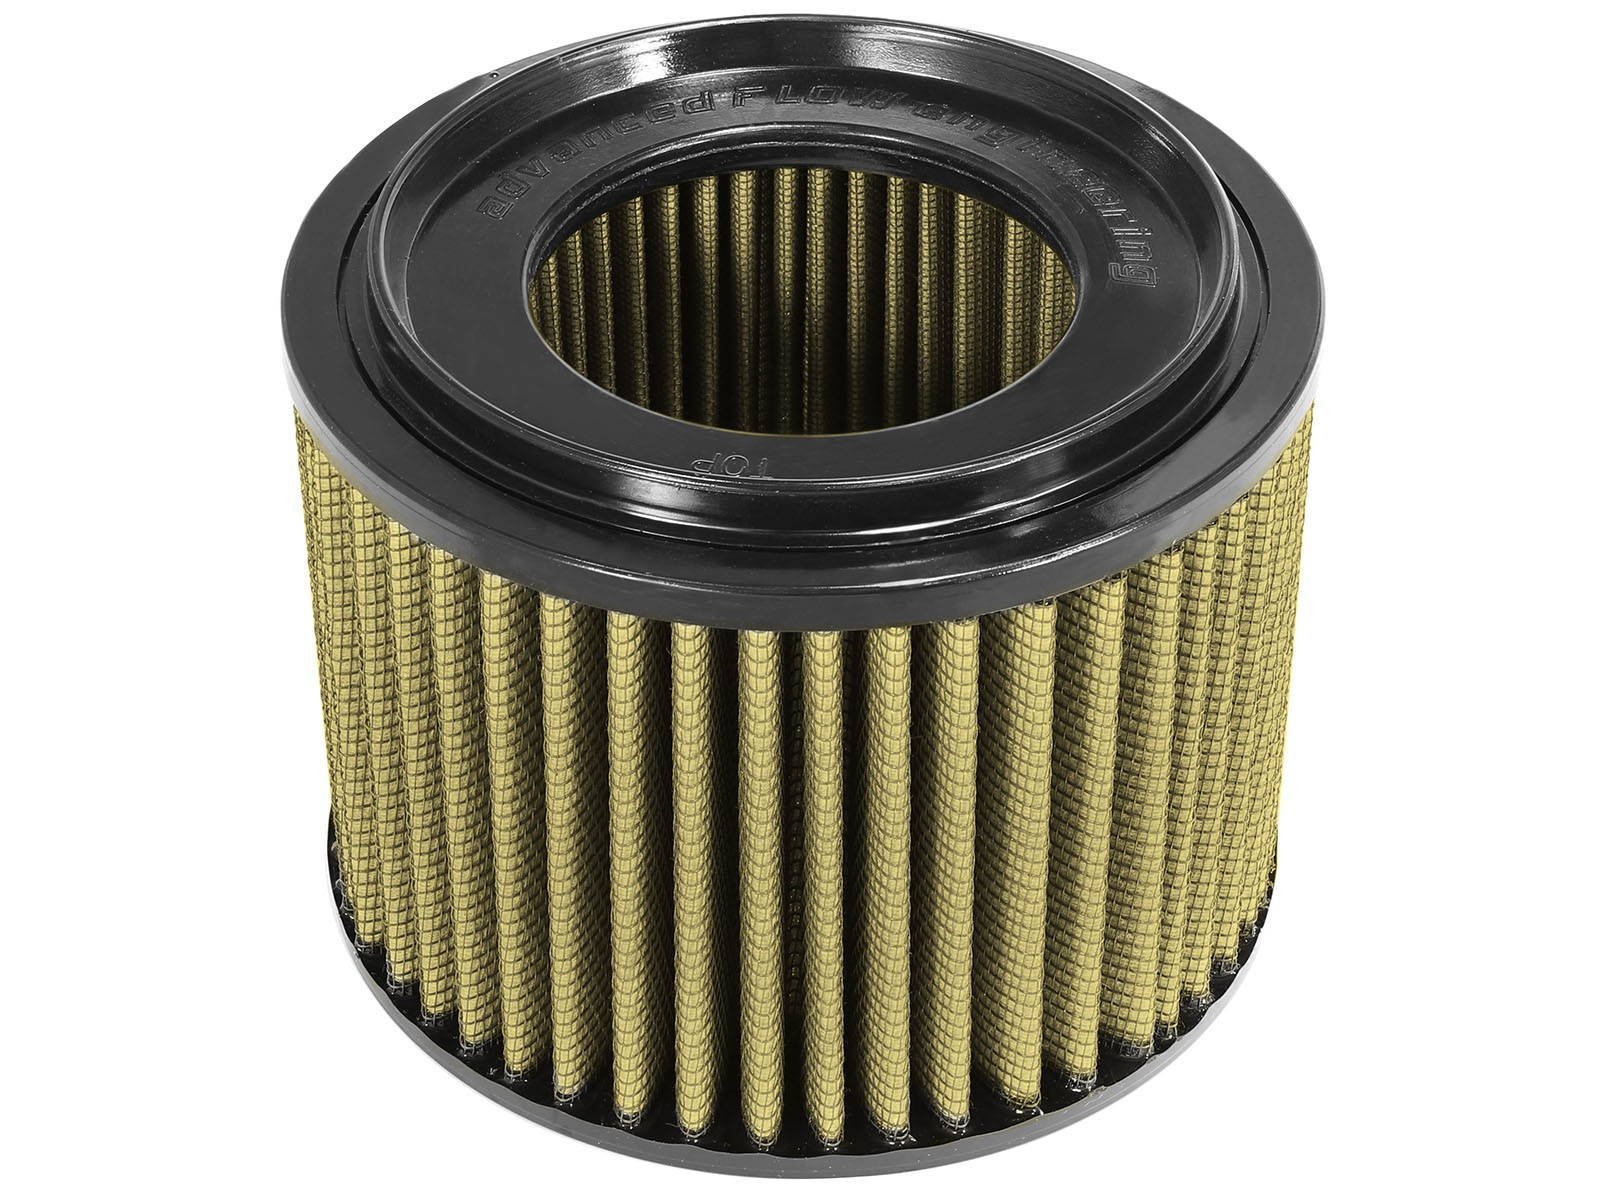 aFe POWER 71-10104 Magnum FLOW Pro GUARD7 Air Filter